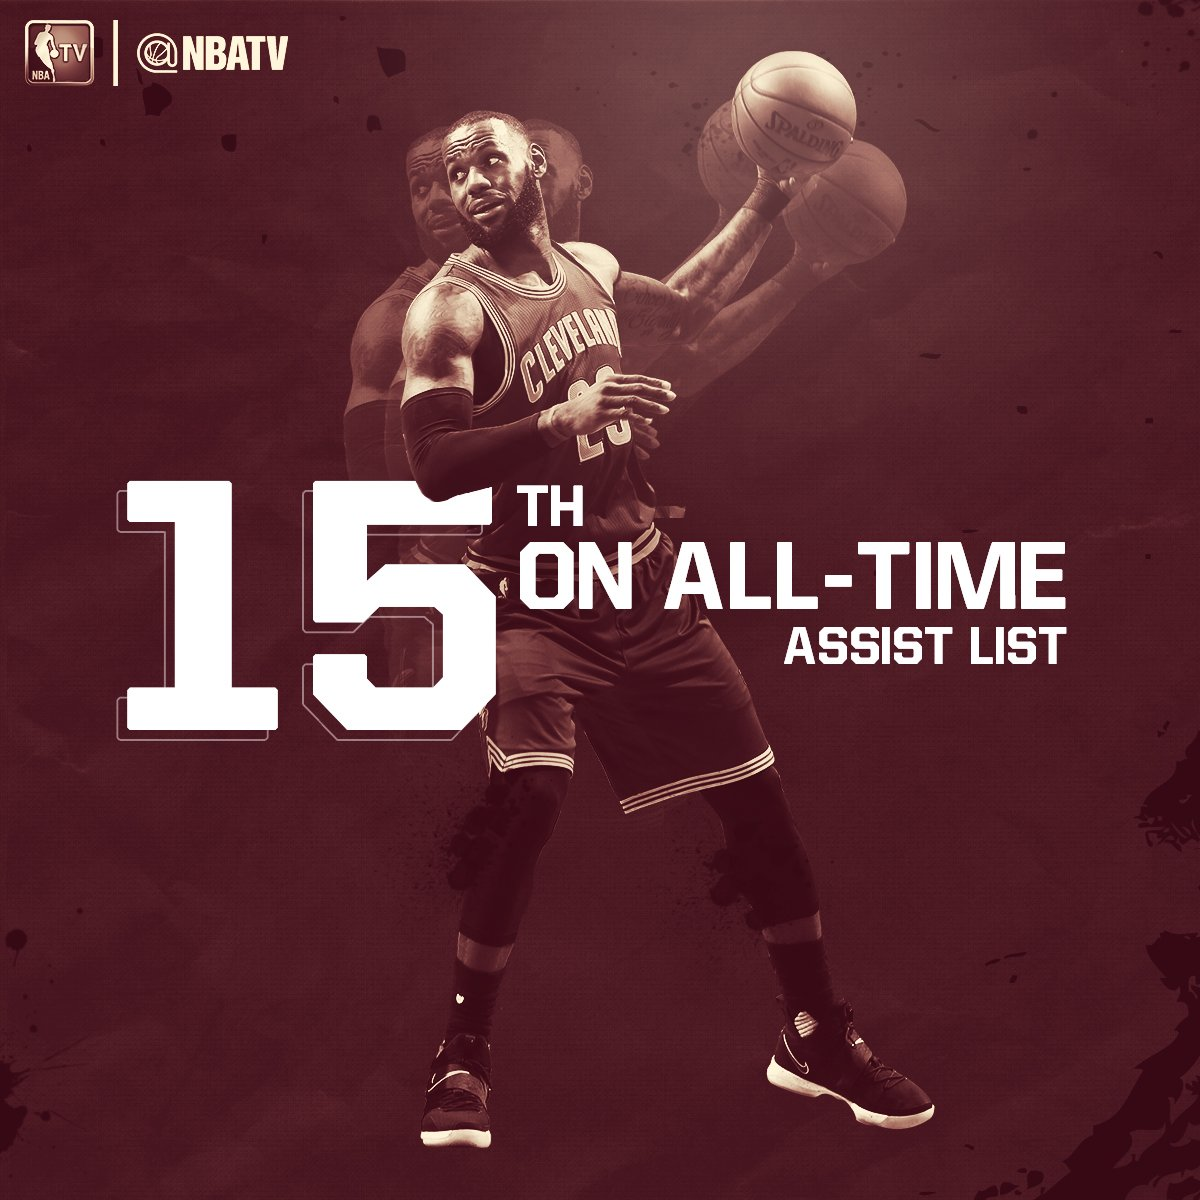 LeBron James passes Tim Hardaway for 15th on the @NBA's all-time assists list. https://t.co/sMrqPMfa6I